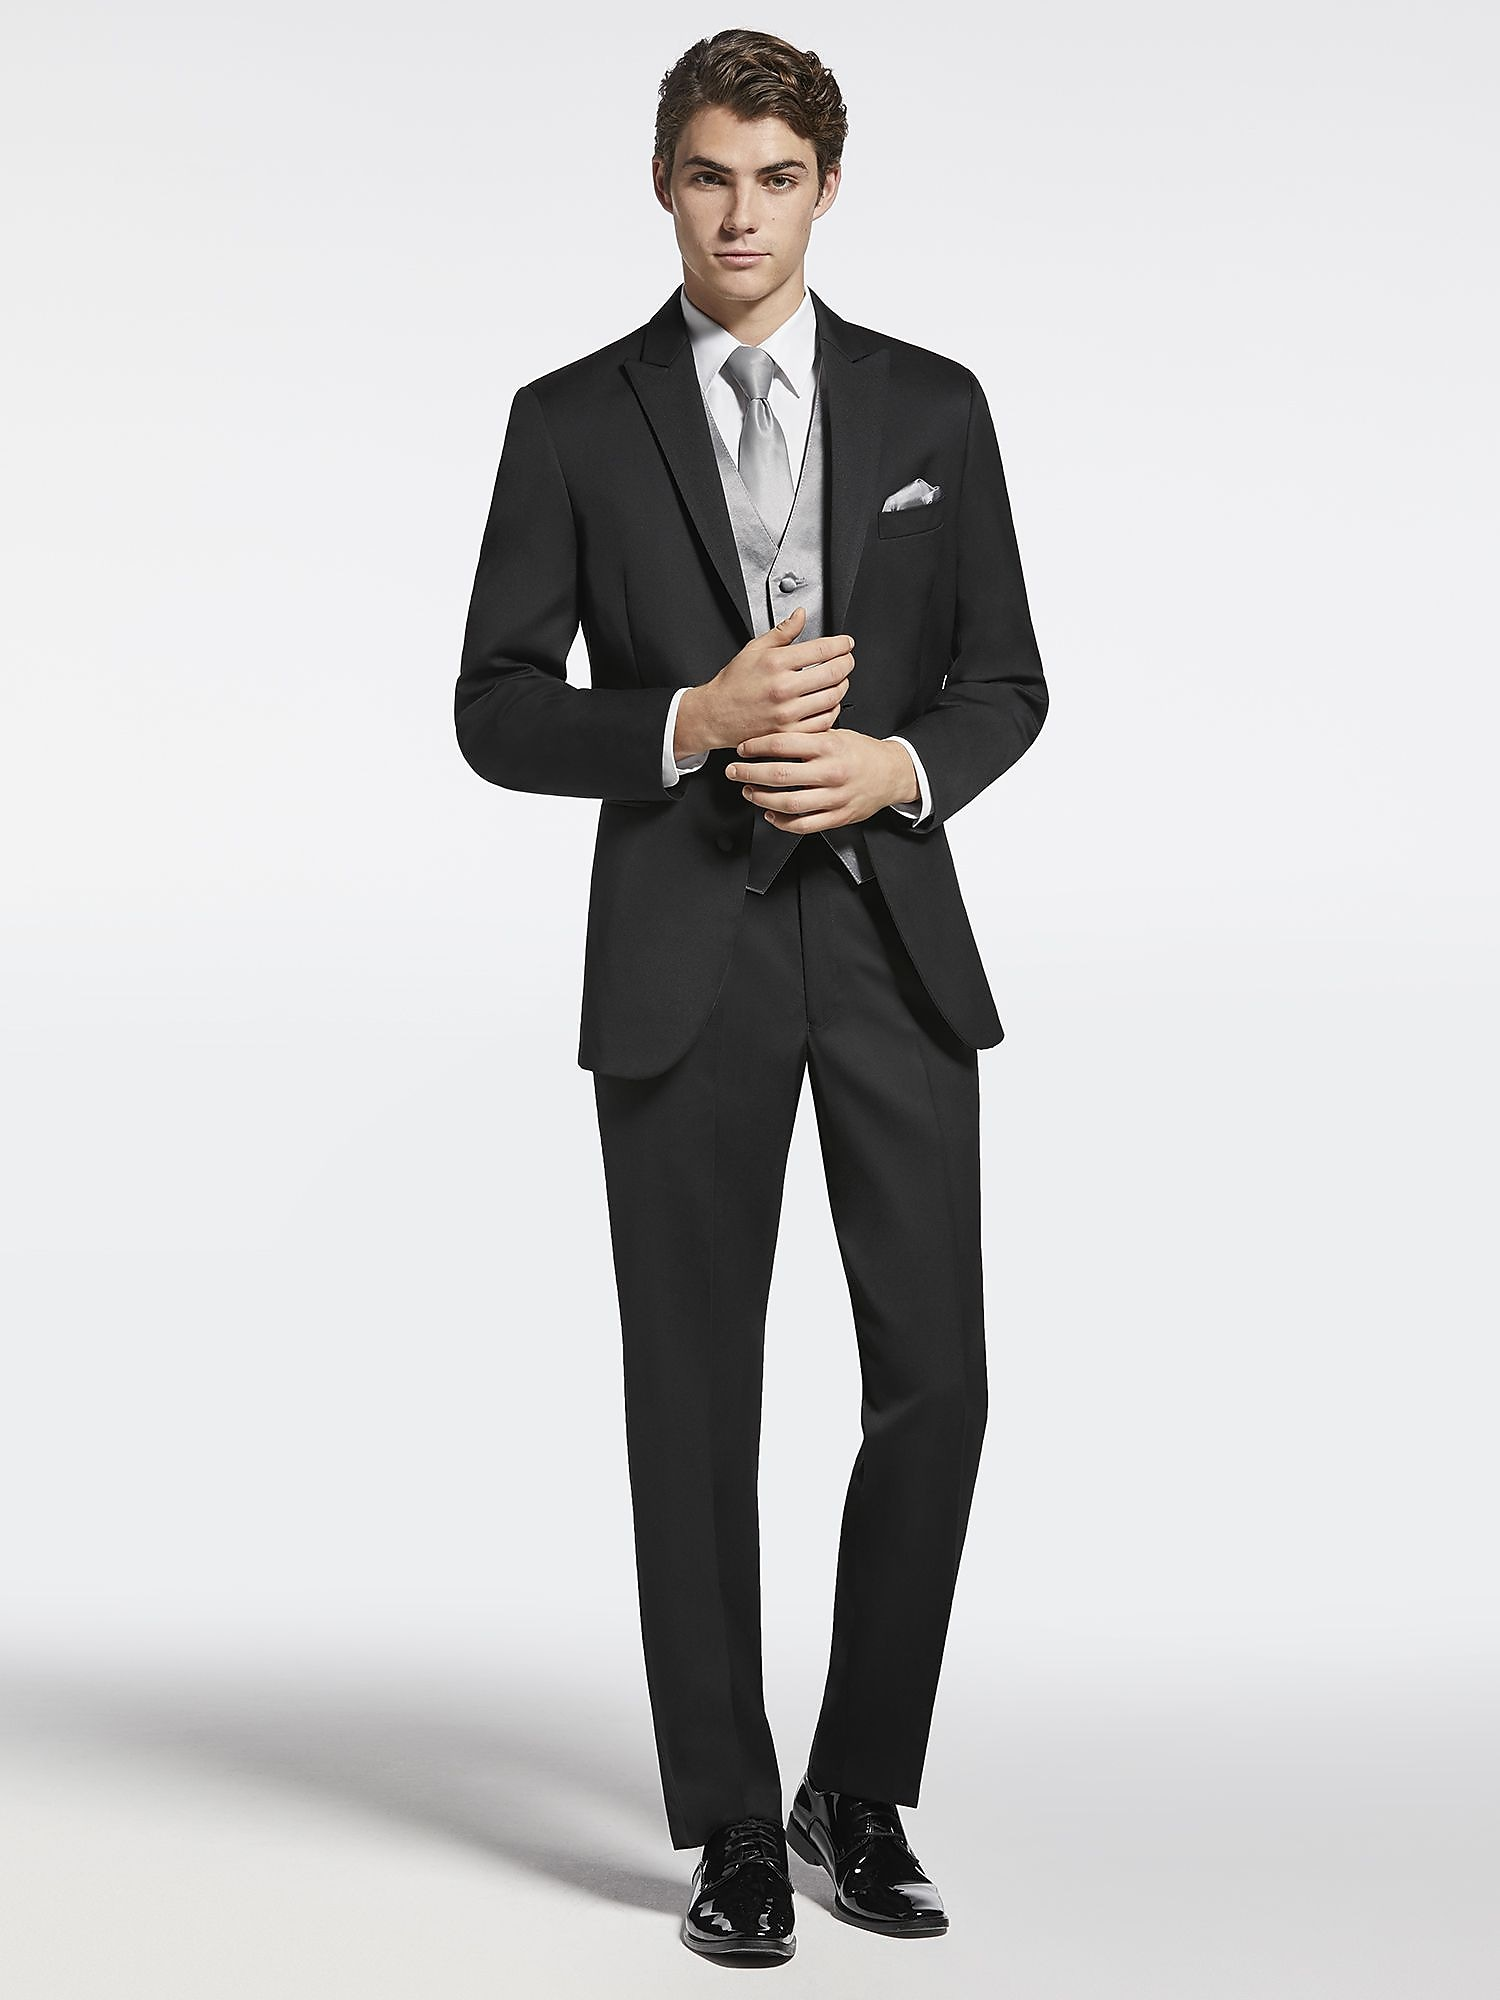 214aa646828 Here s what s included in your package  Joseph Abboud Black Peak Lapel ...